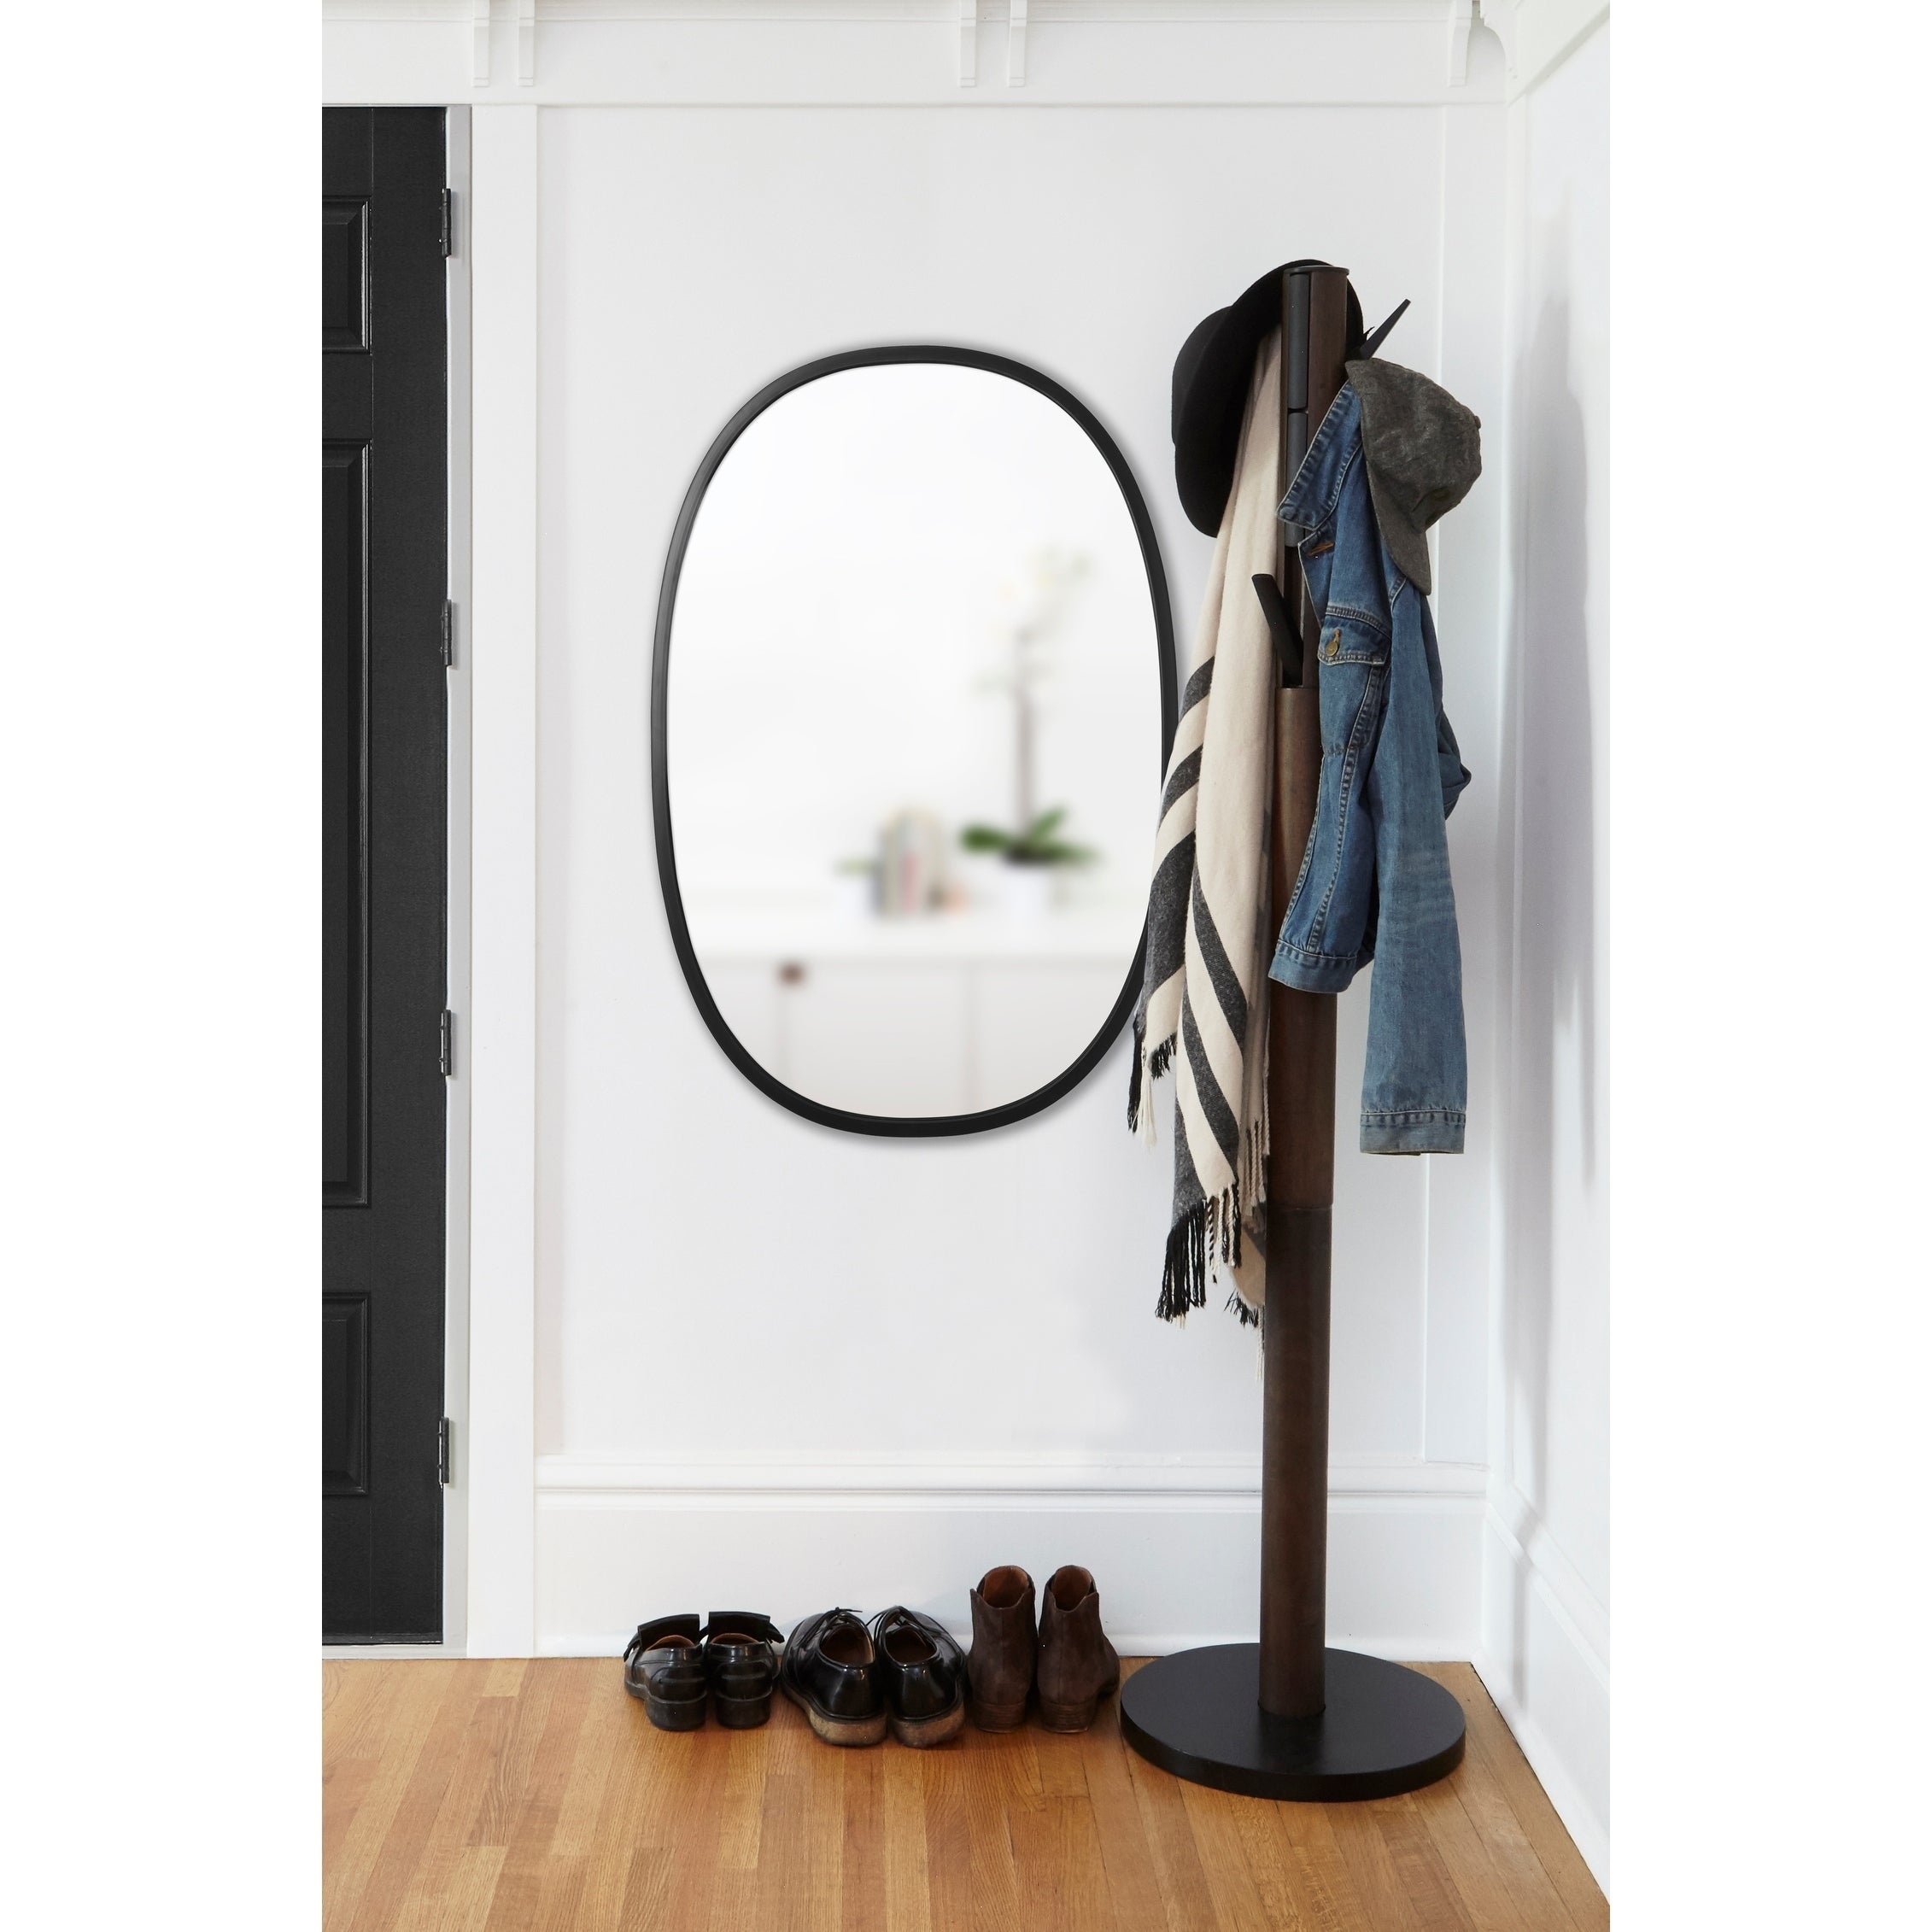 Umbra Hub Mirror Black Oval 24 Inches X 36 Inches pertaining to Hub Modern and Contemporary Accent Mirrors (Image 23 of 30)